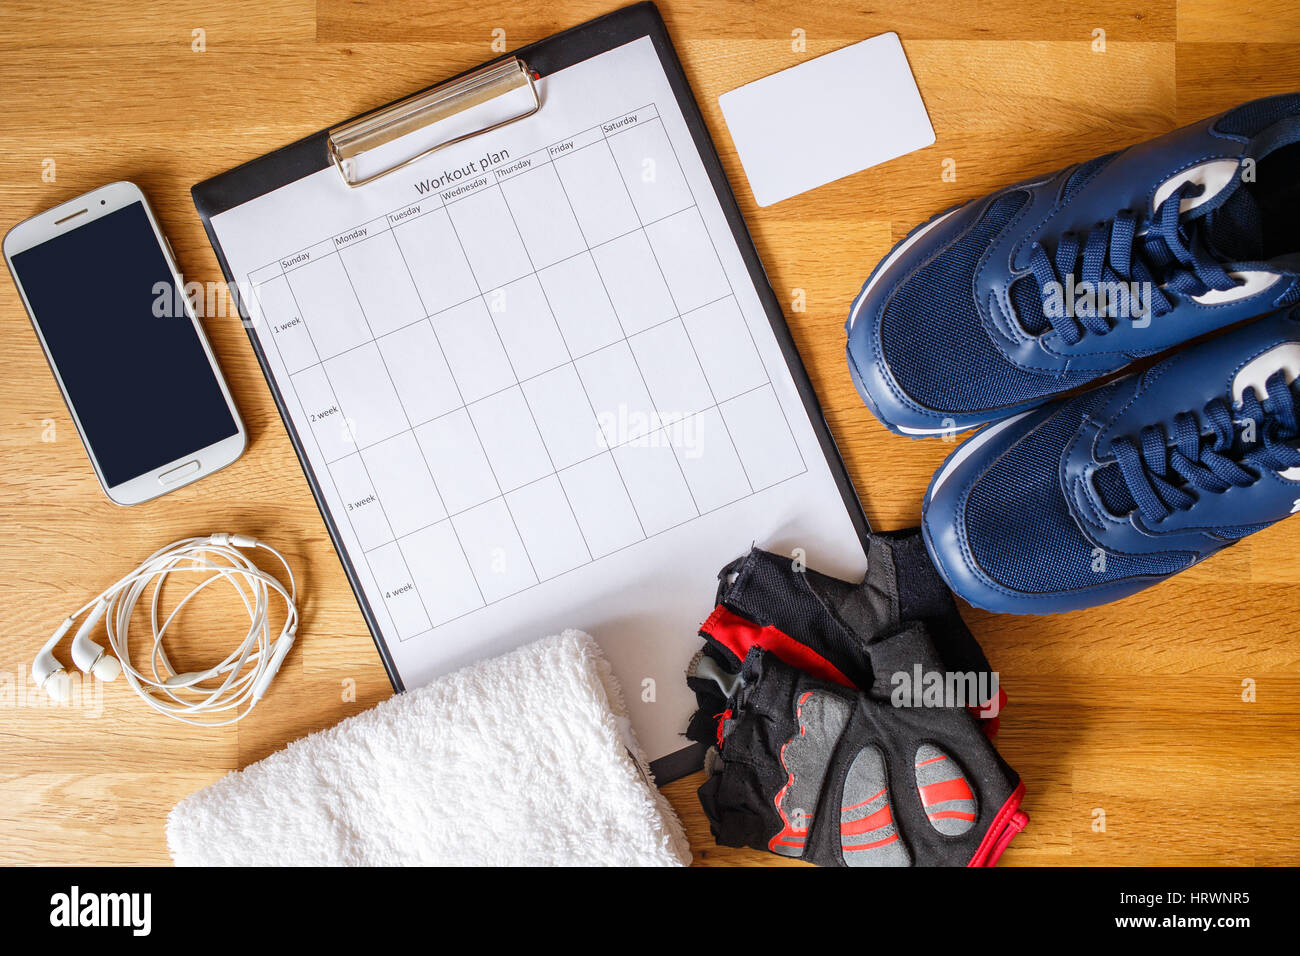 personal workout plan with phone and other stuff stock photo